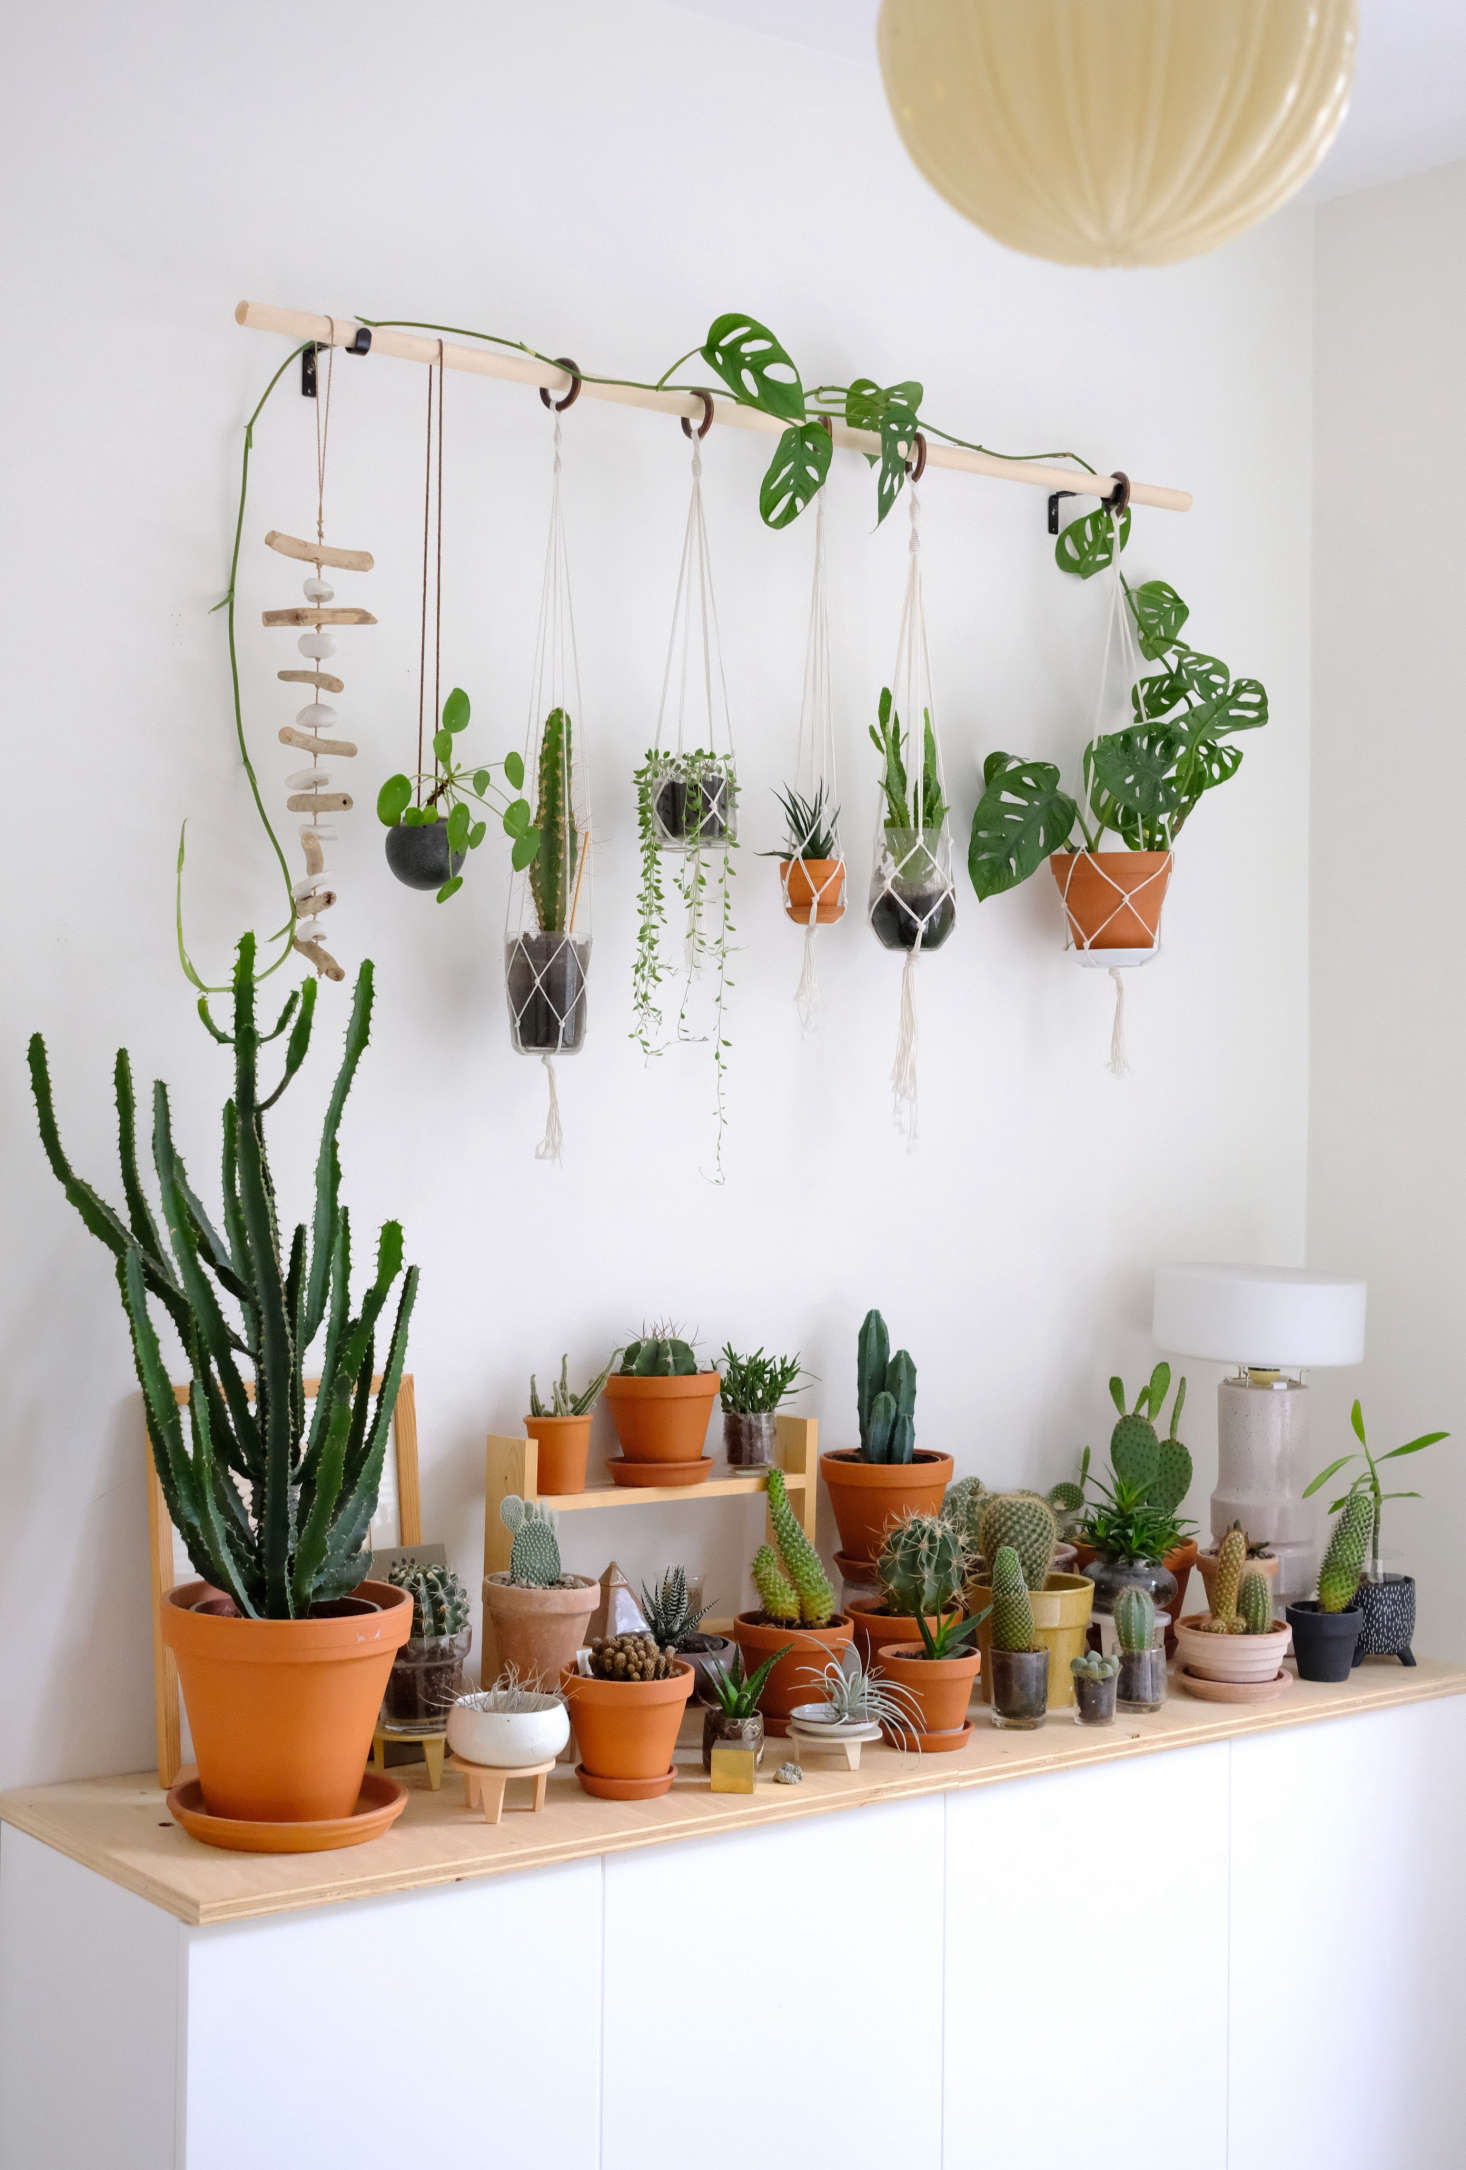 Diy Hanging Plant Wall With Macrame Planters